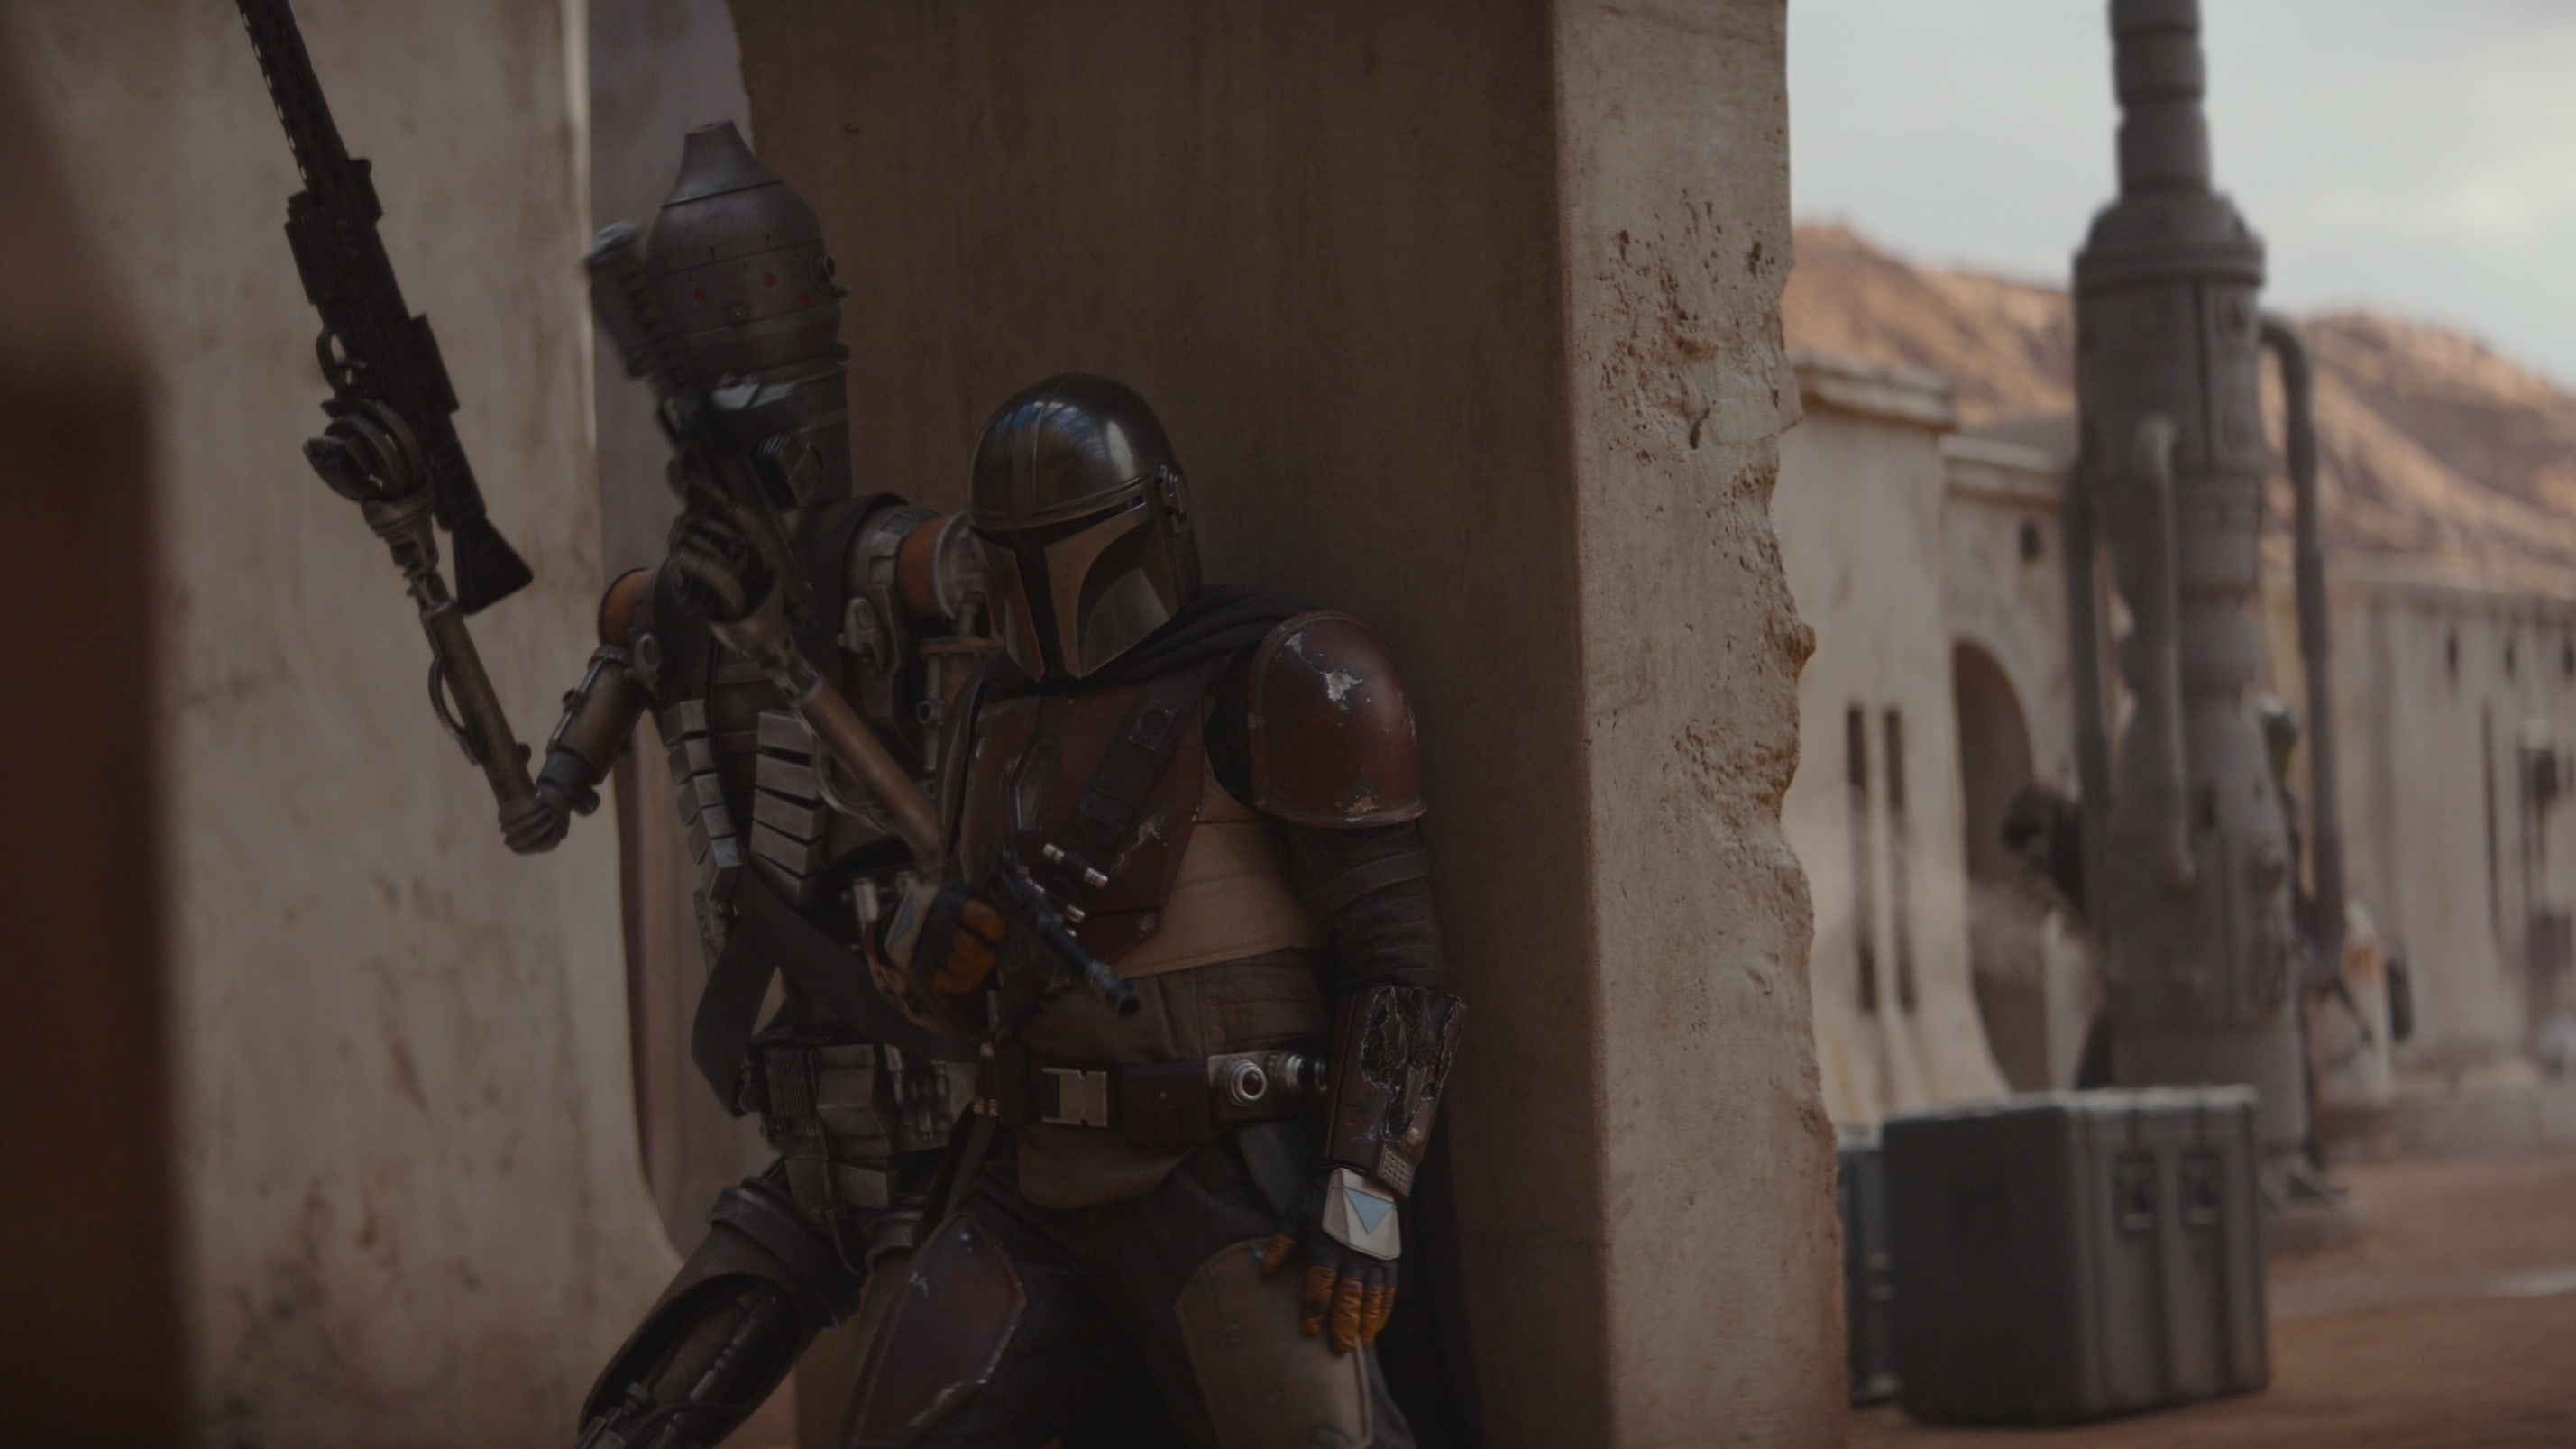 Taika Waititi is the voice if IG-11 and Pedro Pascal is the Mandalorian in THE MANDALORIAN, exclusively on Disney+